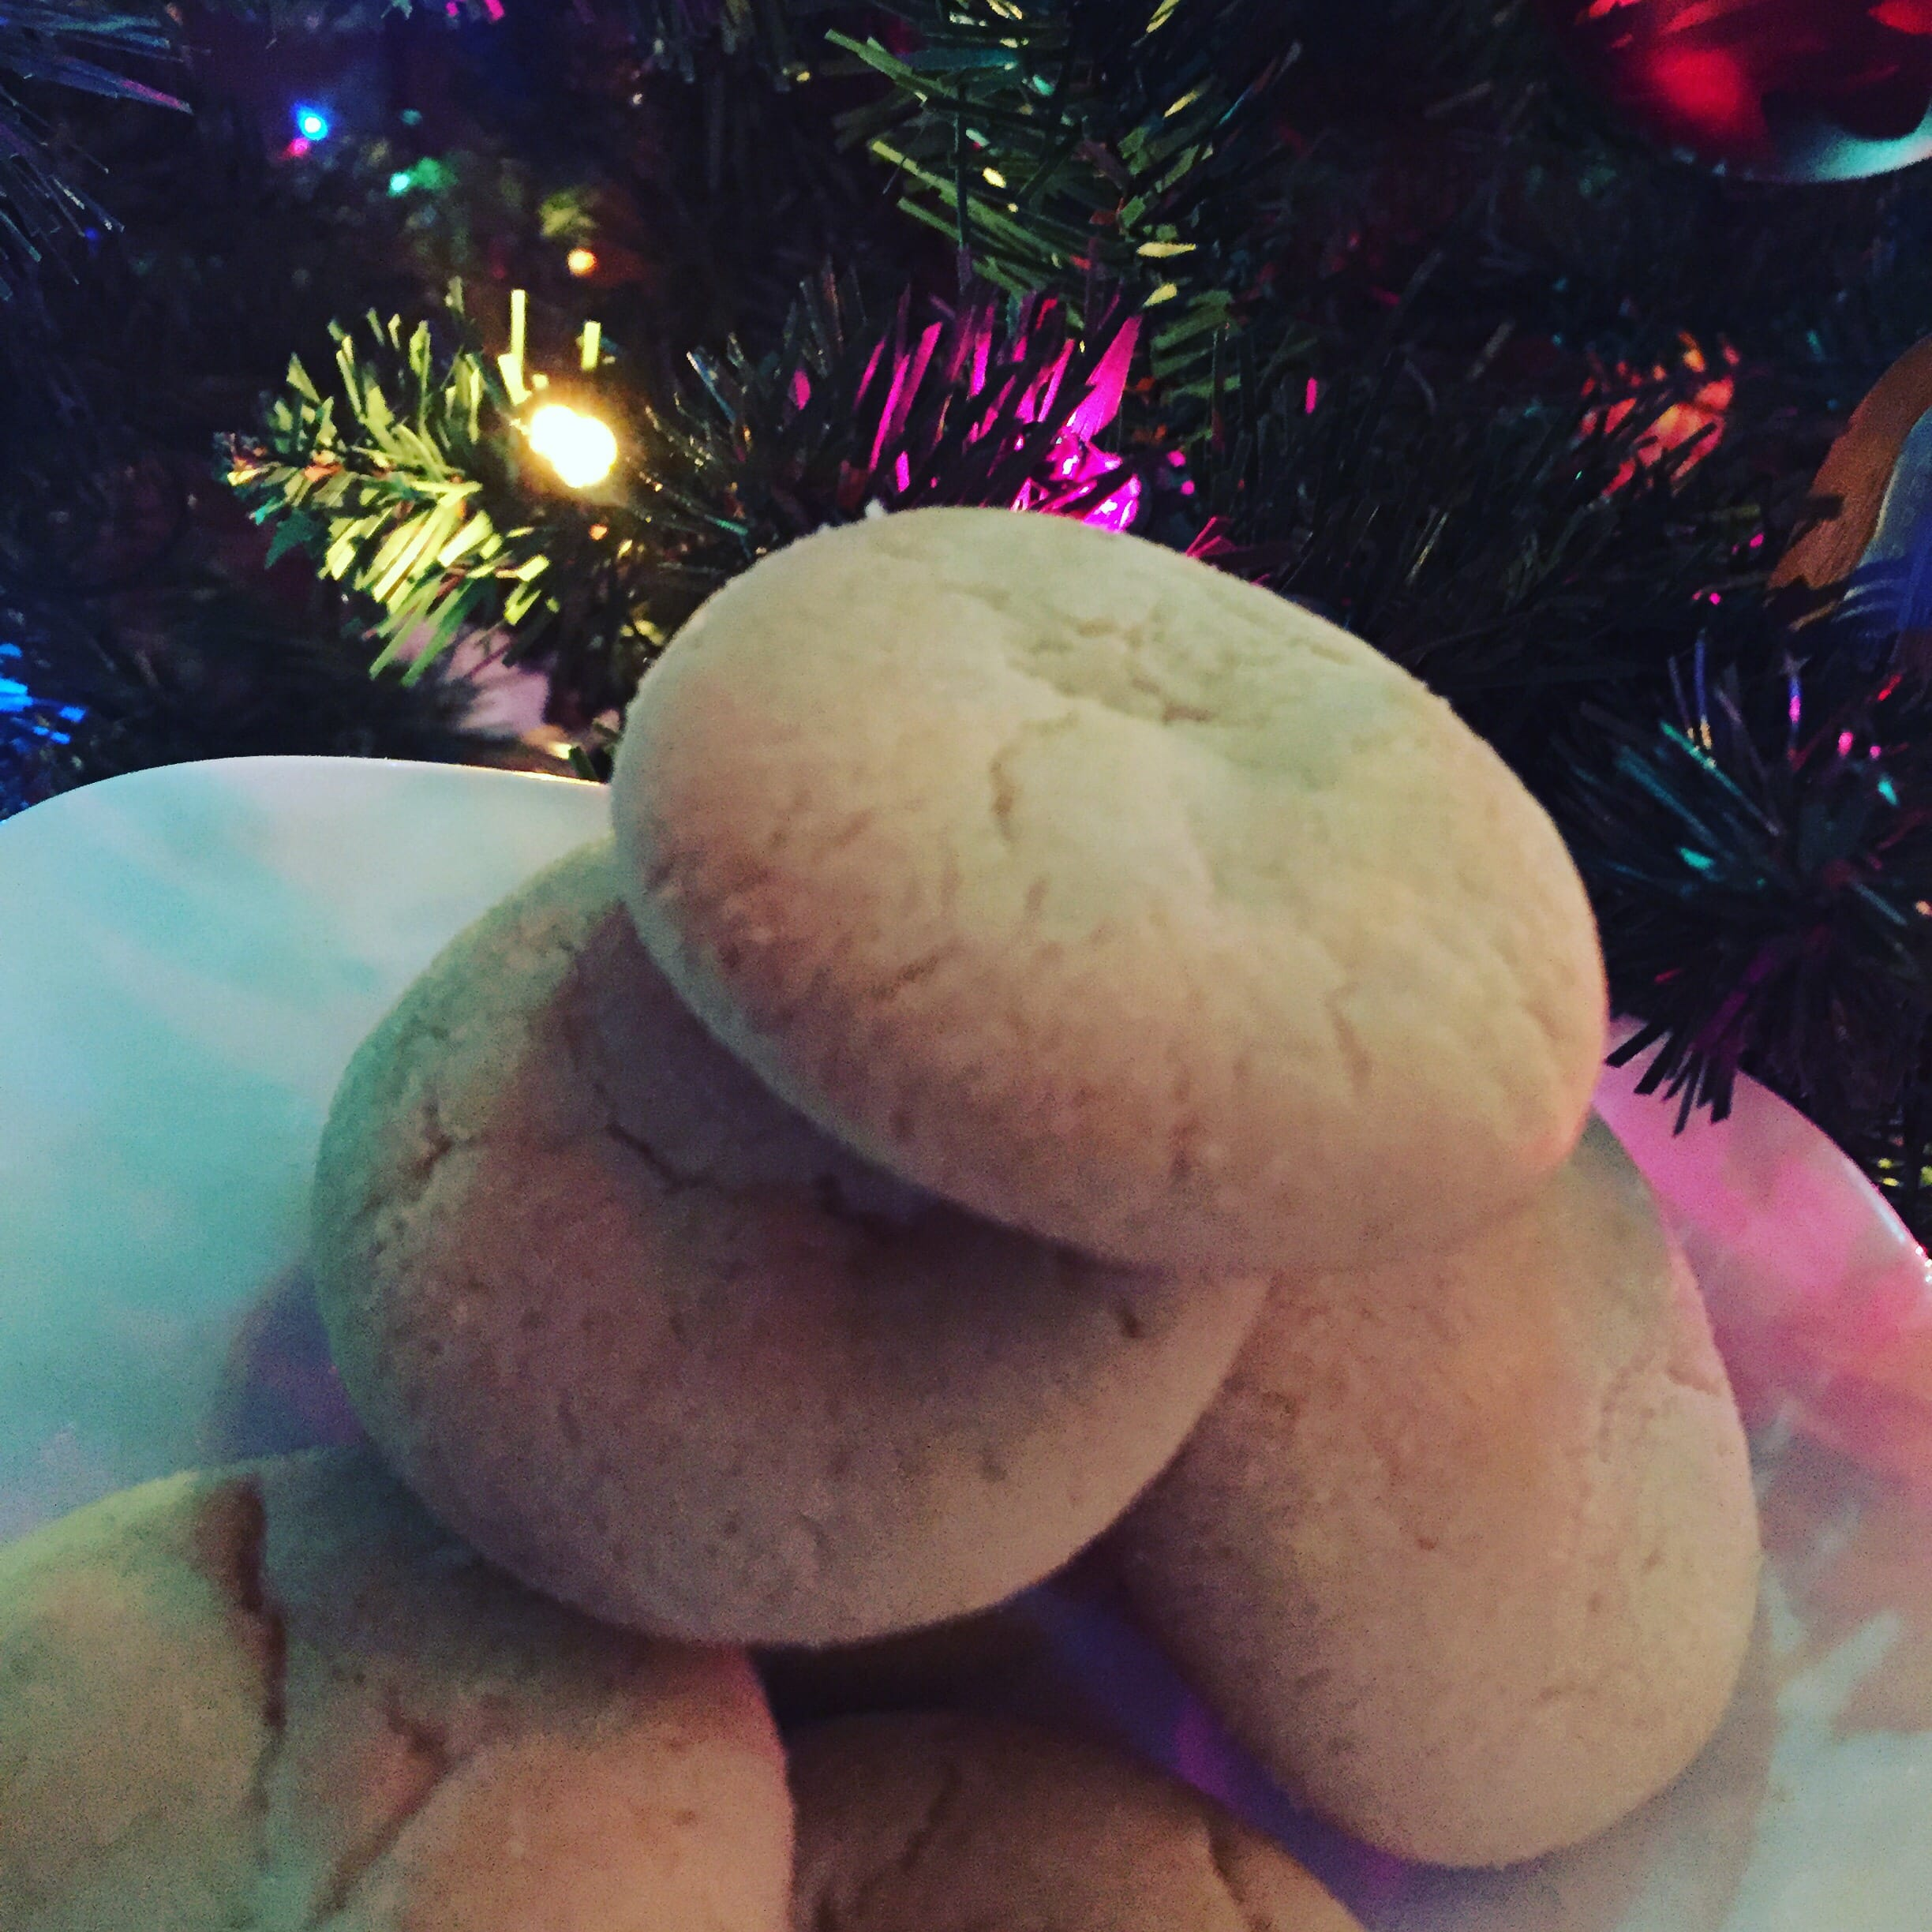 Baked sugar cookies stacked on a white plate in front of a lighted Christmas Tree